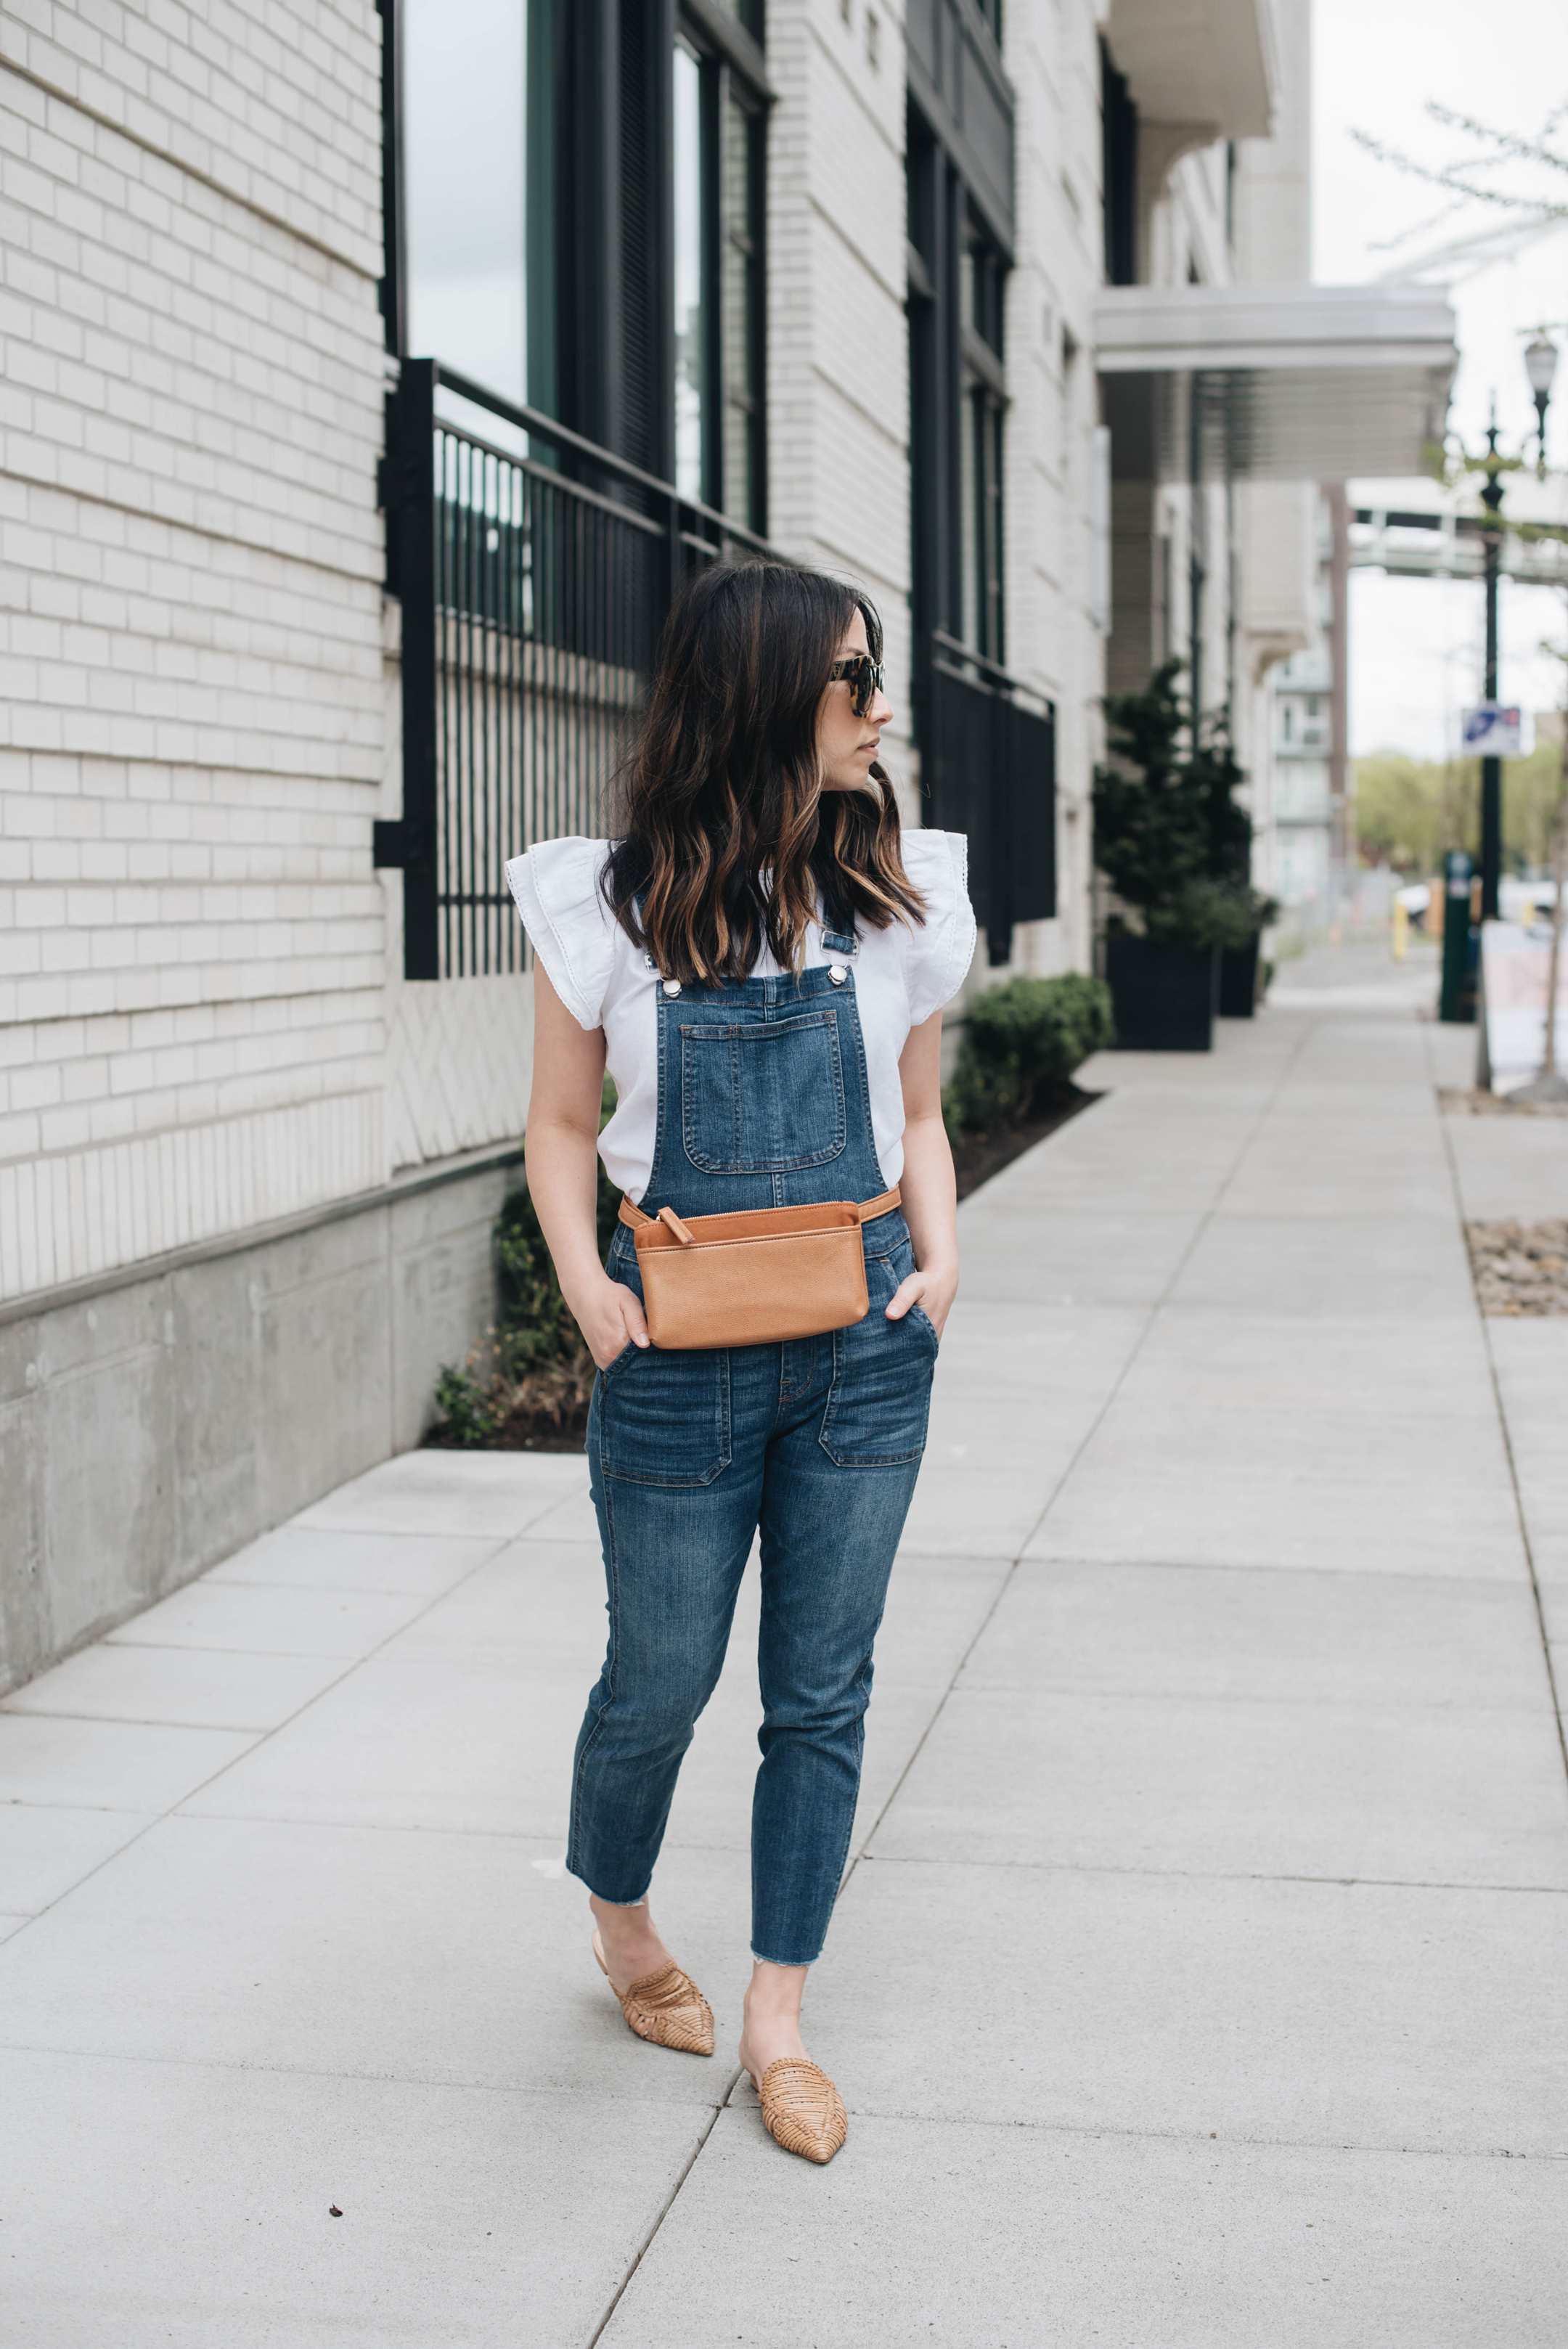 49a15b0cdc4 Madewell Petite Review - Crystalin Marie